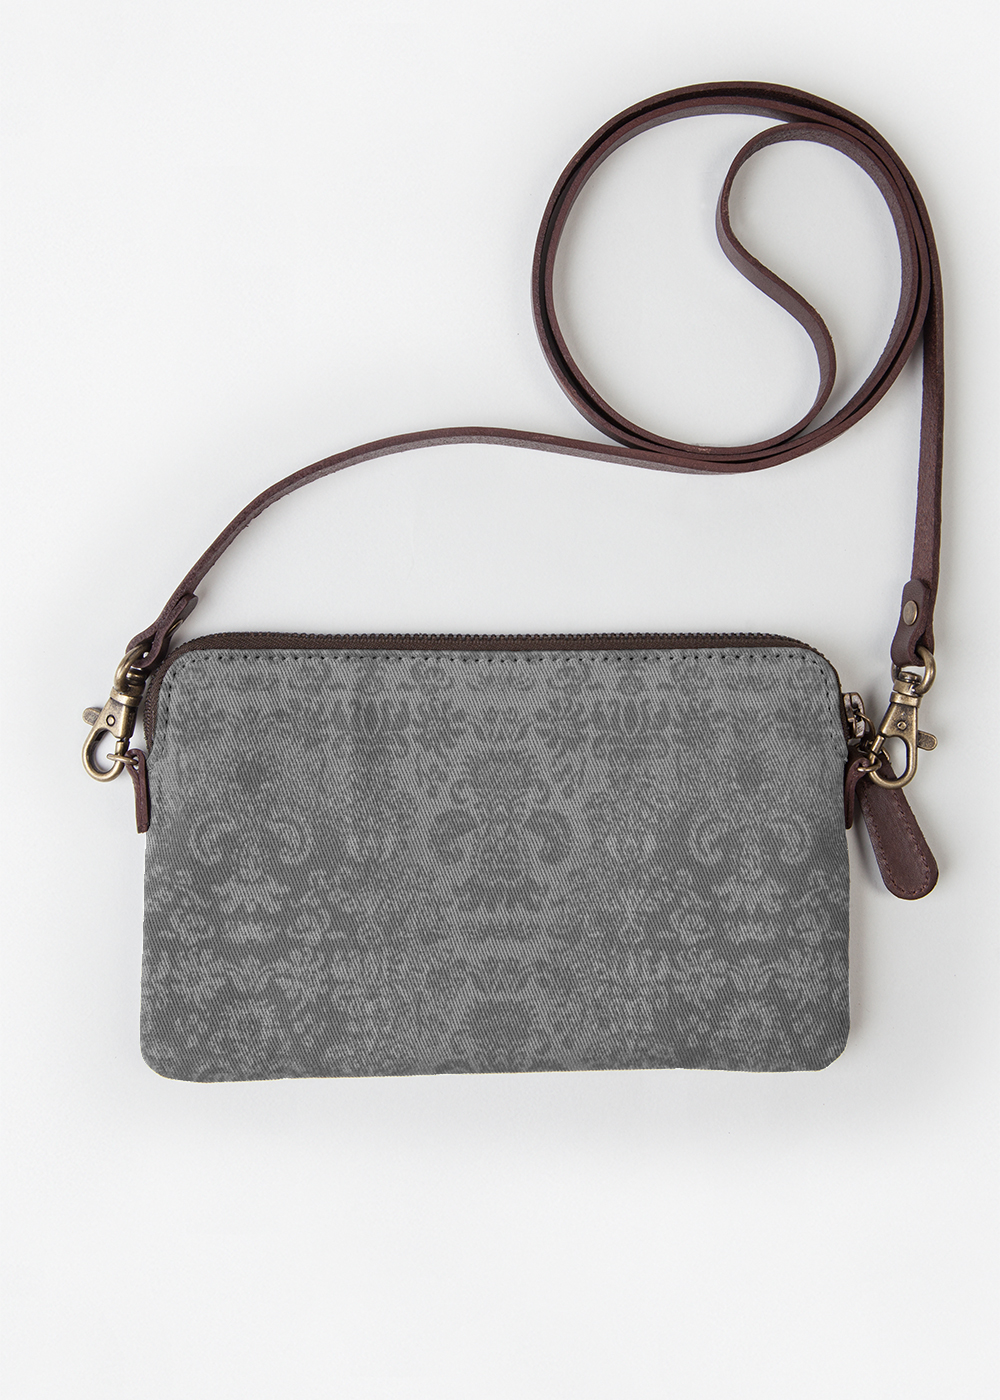 VIDA Statement Bag - Rusty wool by VIDA